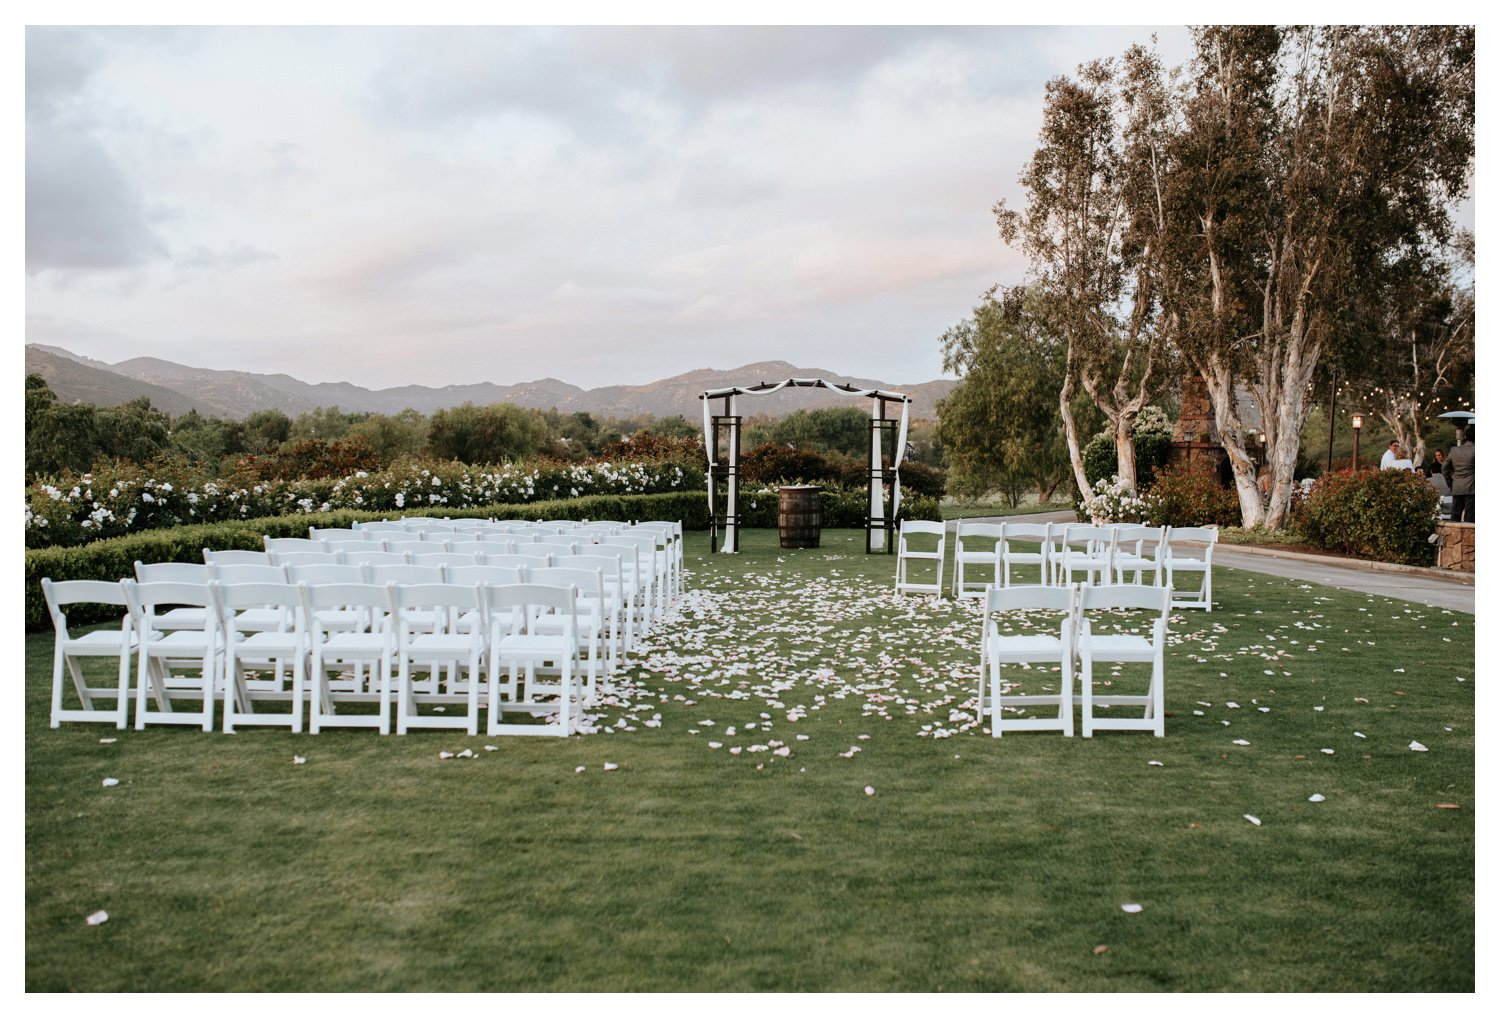 Flower pedals strewn across a lawn after a beautiful wedding ceremony at Twin Oaks Golf Course.